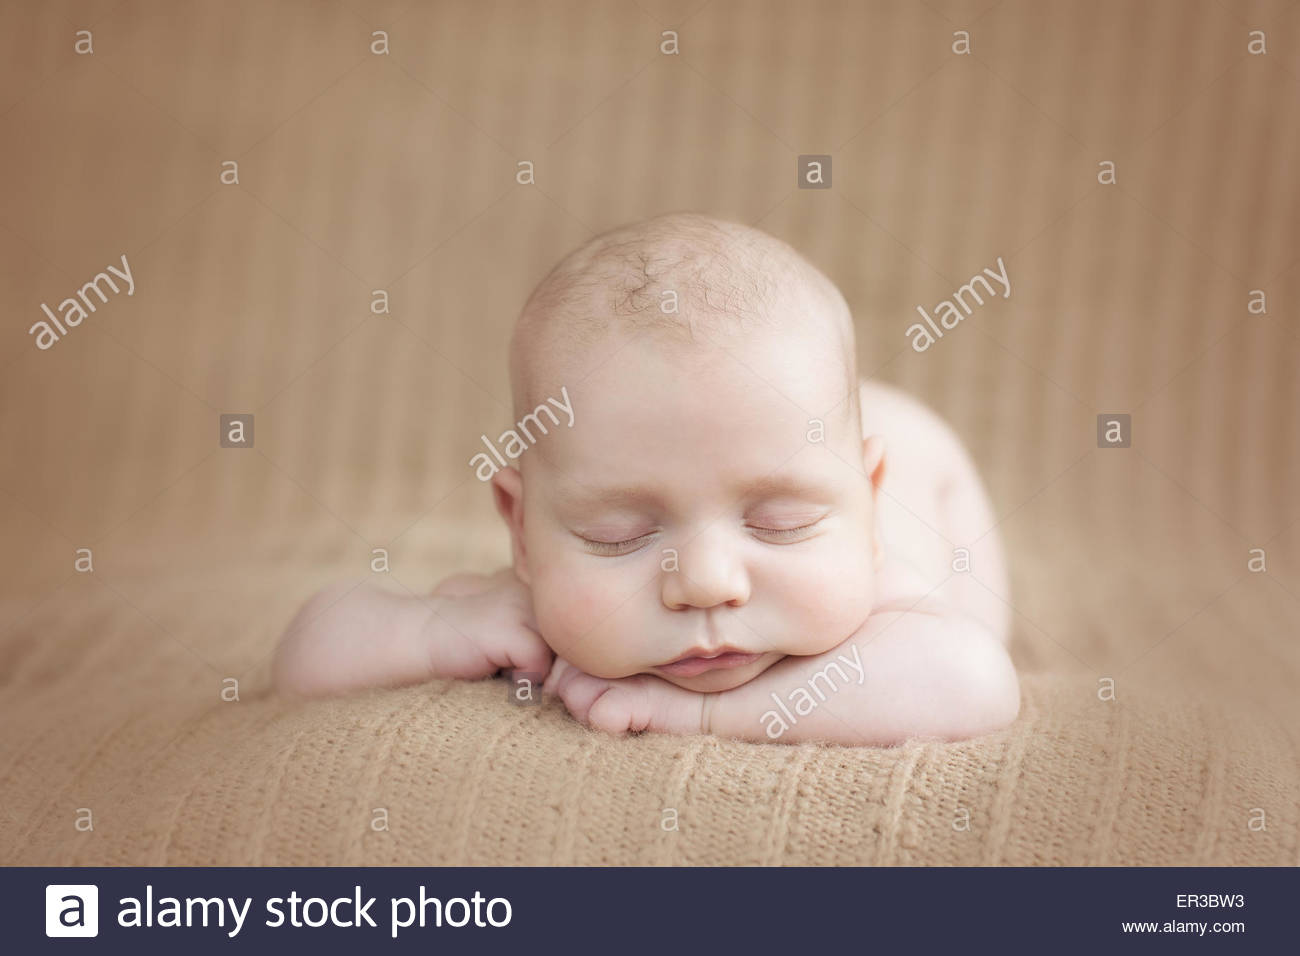 Front view of a baby boy sleeping on a soft blanket - Stock Image